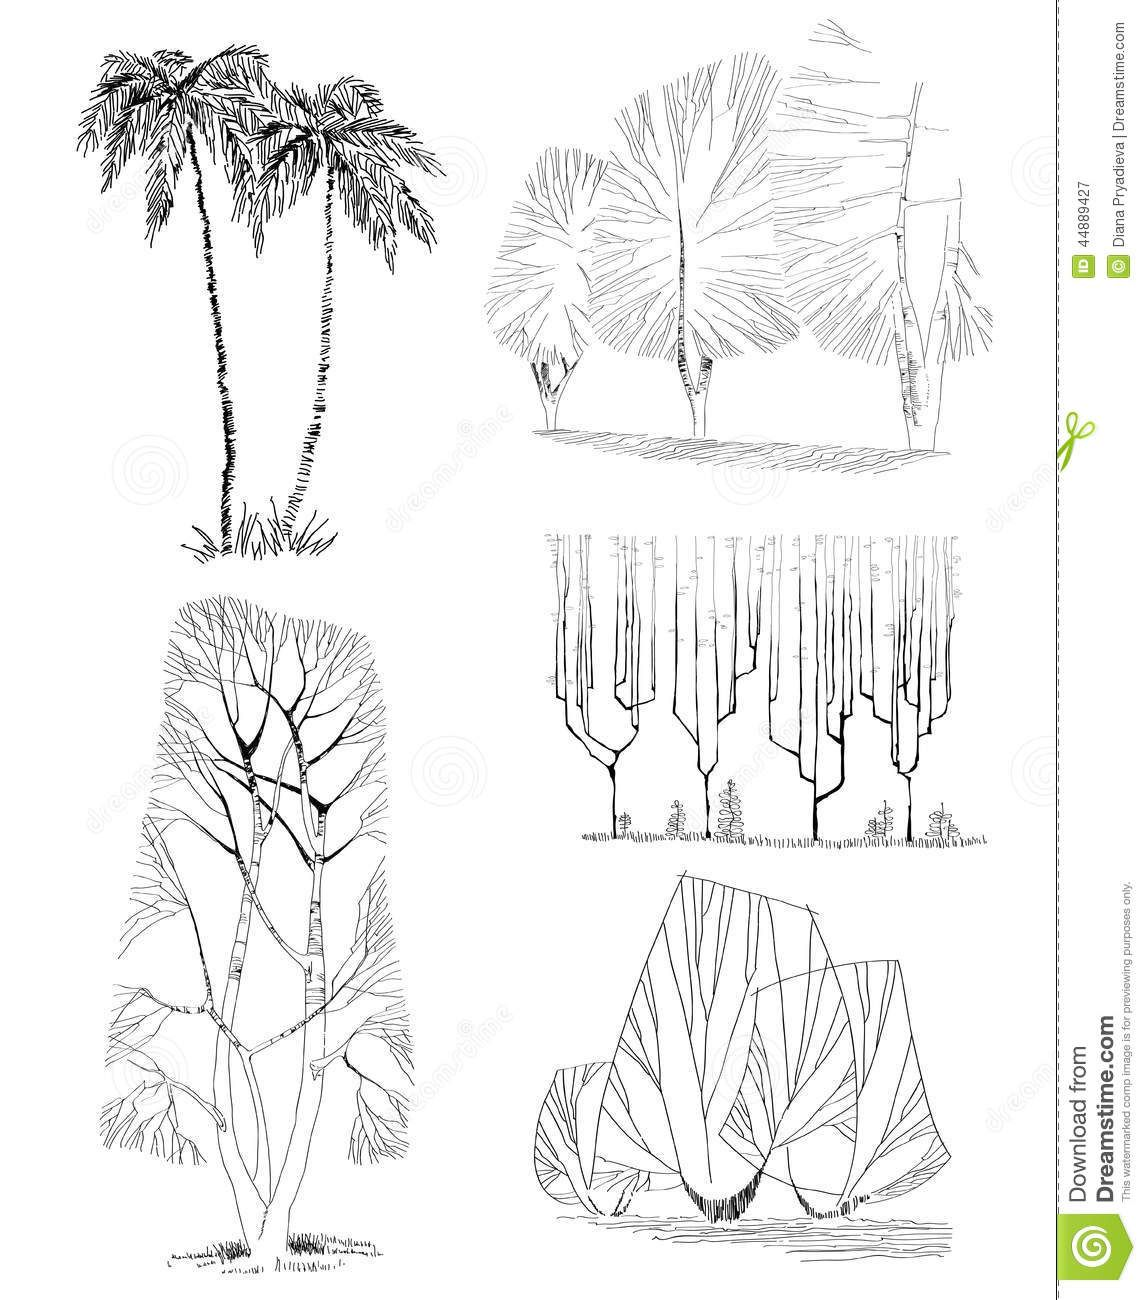 Architecture Drawing Of Trees architectural tree sketches hand drawn trees isolated, sketch